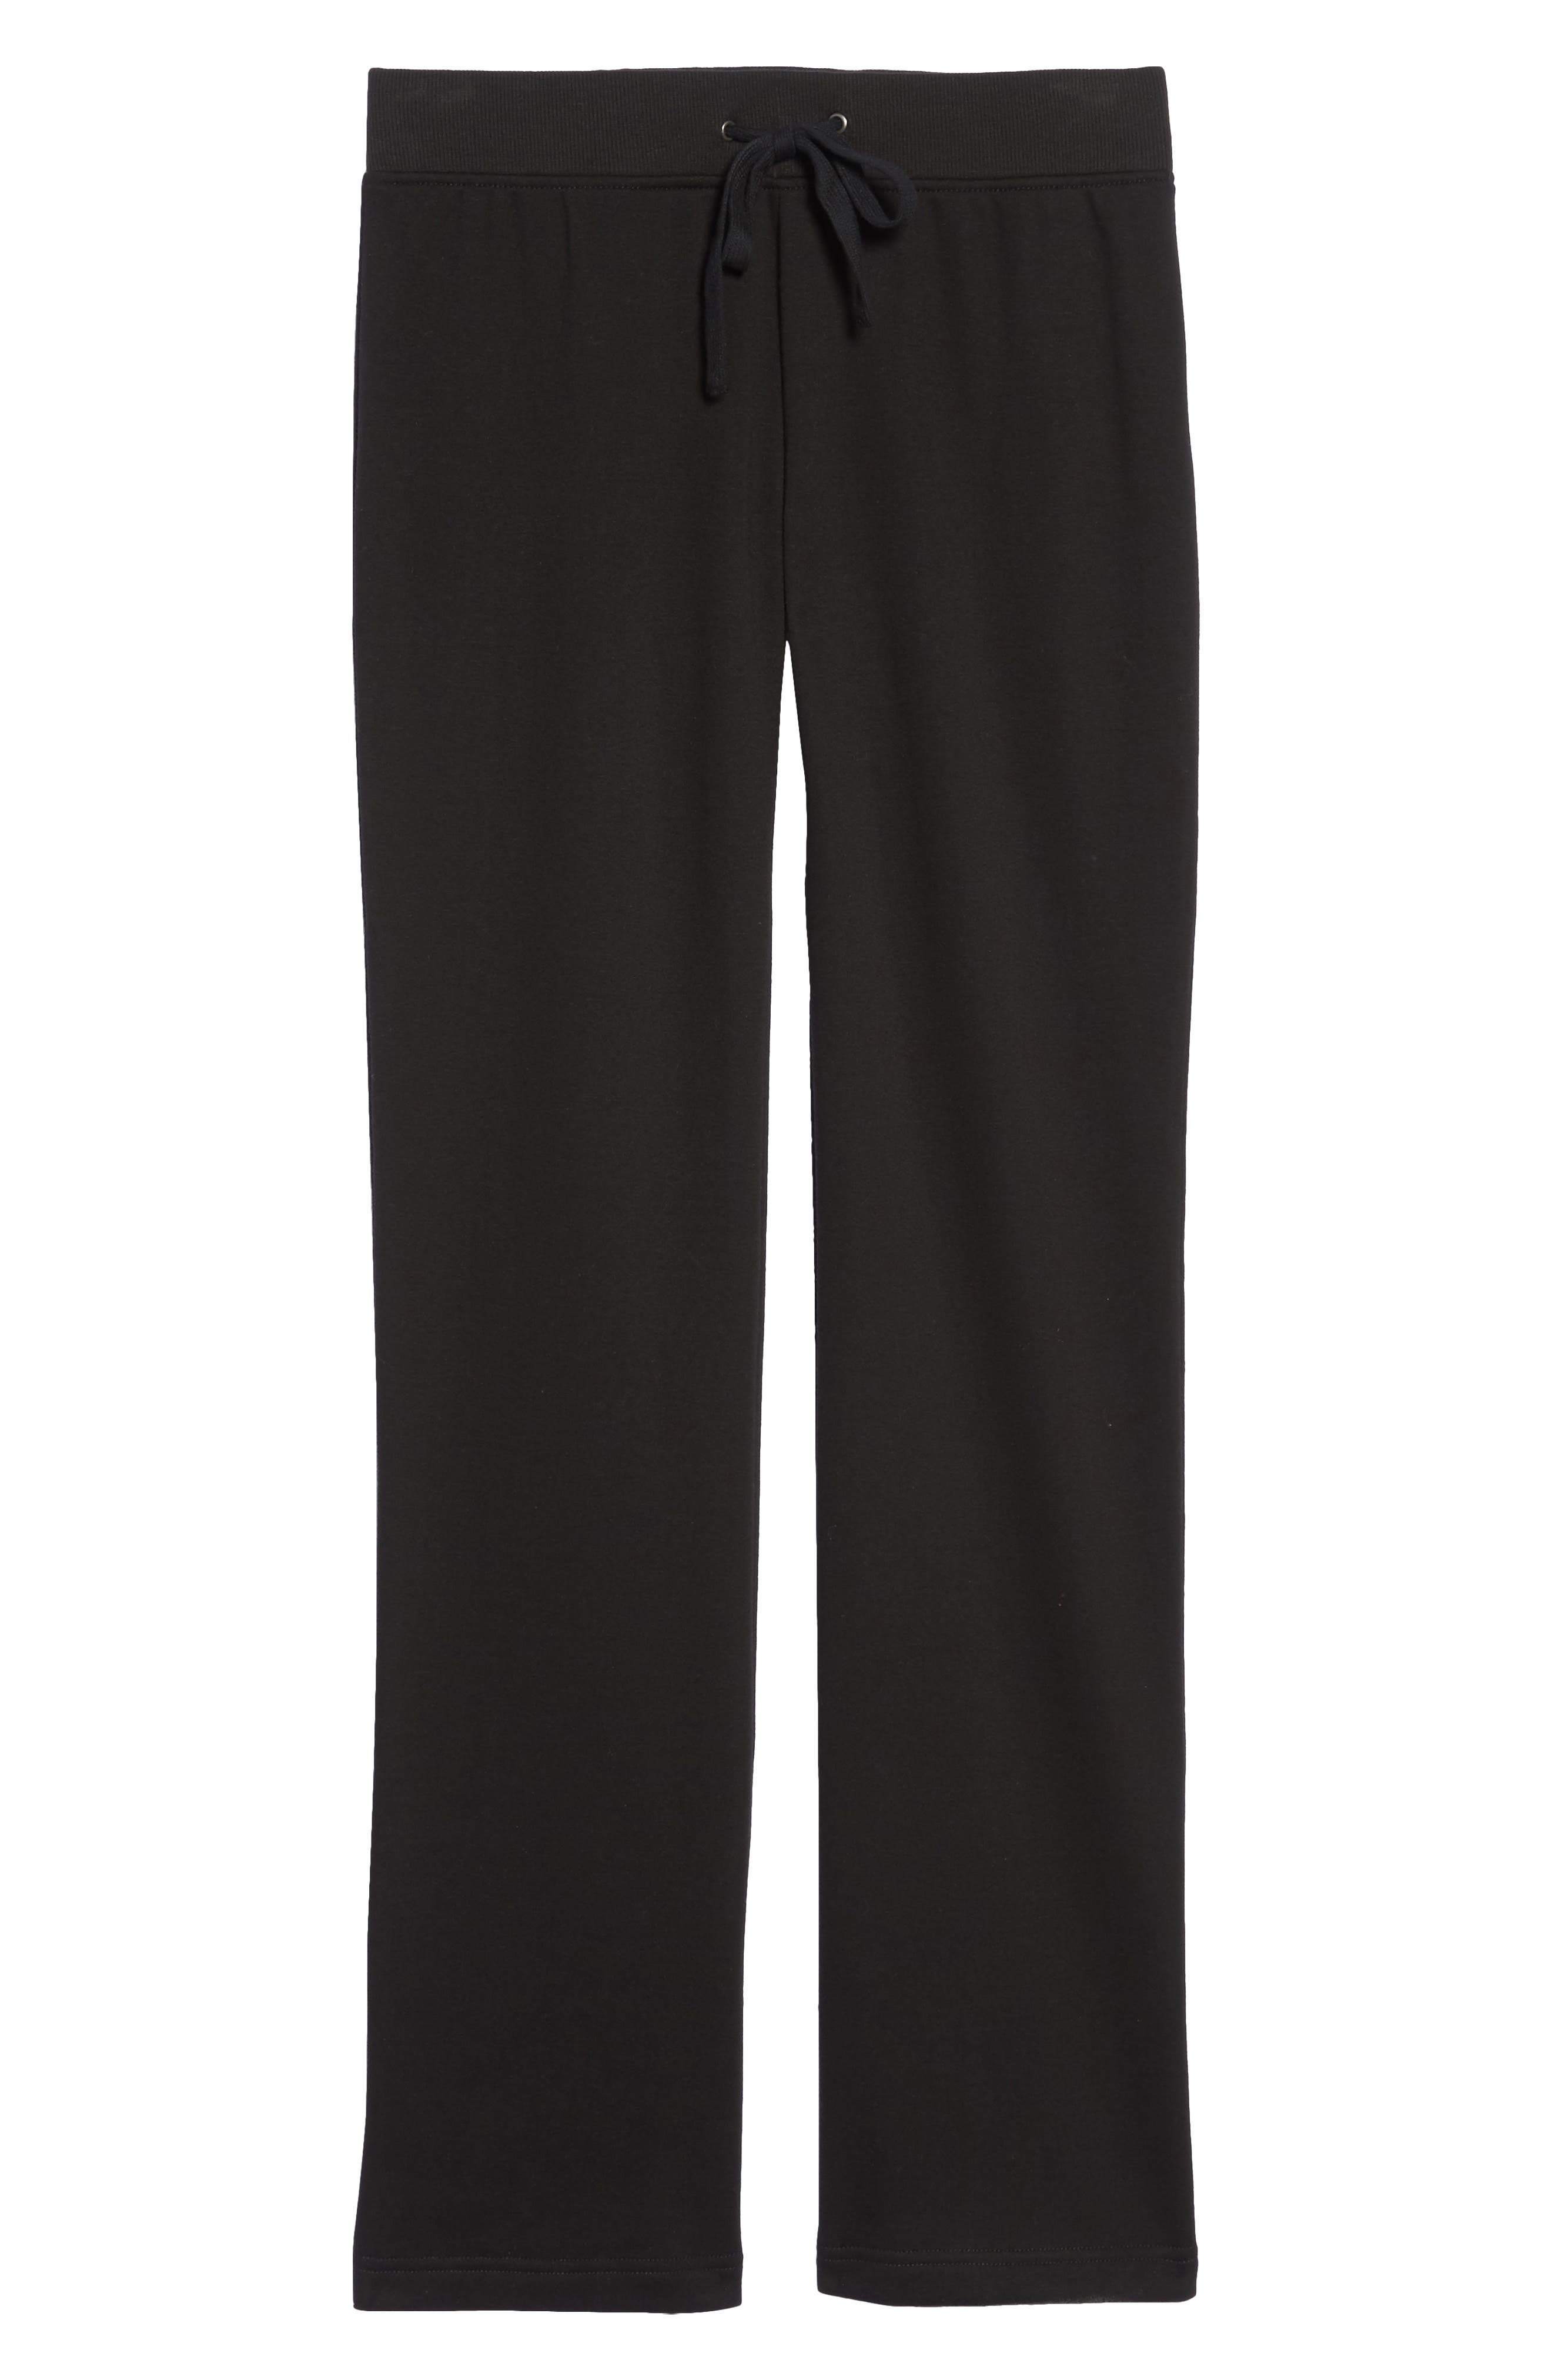 Penny Fleece Pants,                             Alternate thumbnail 6, color,                             BLACK